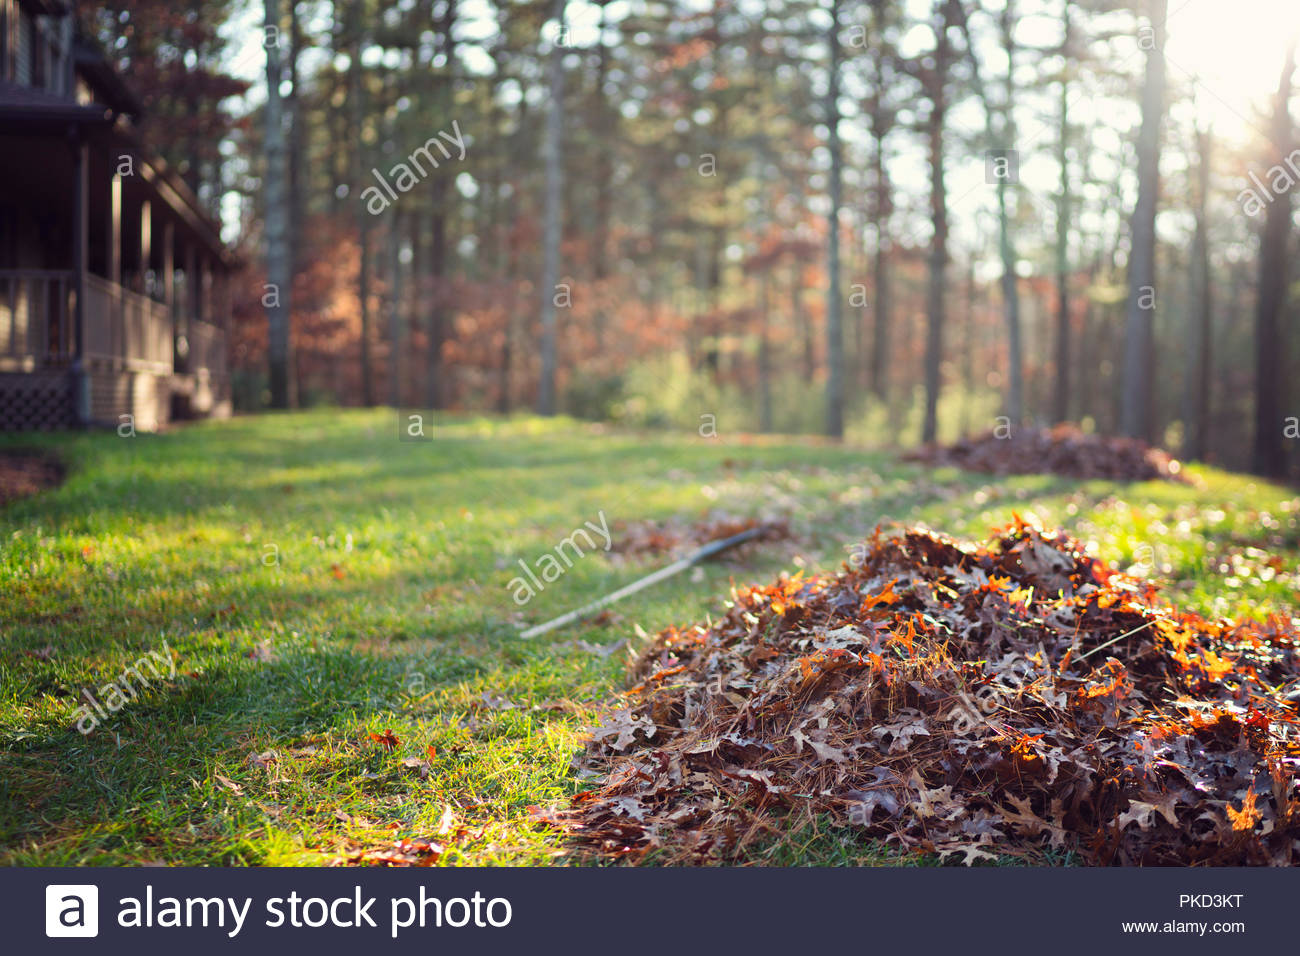 pile of raked up autumn leaves on front lawn with rake beside it and partial house views in background with low sun in the background - Stock Image